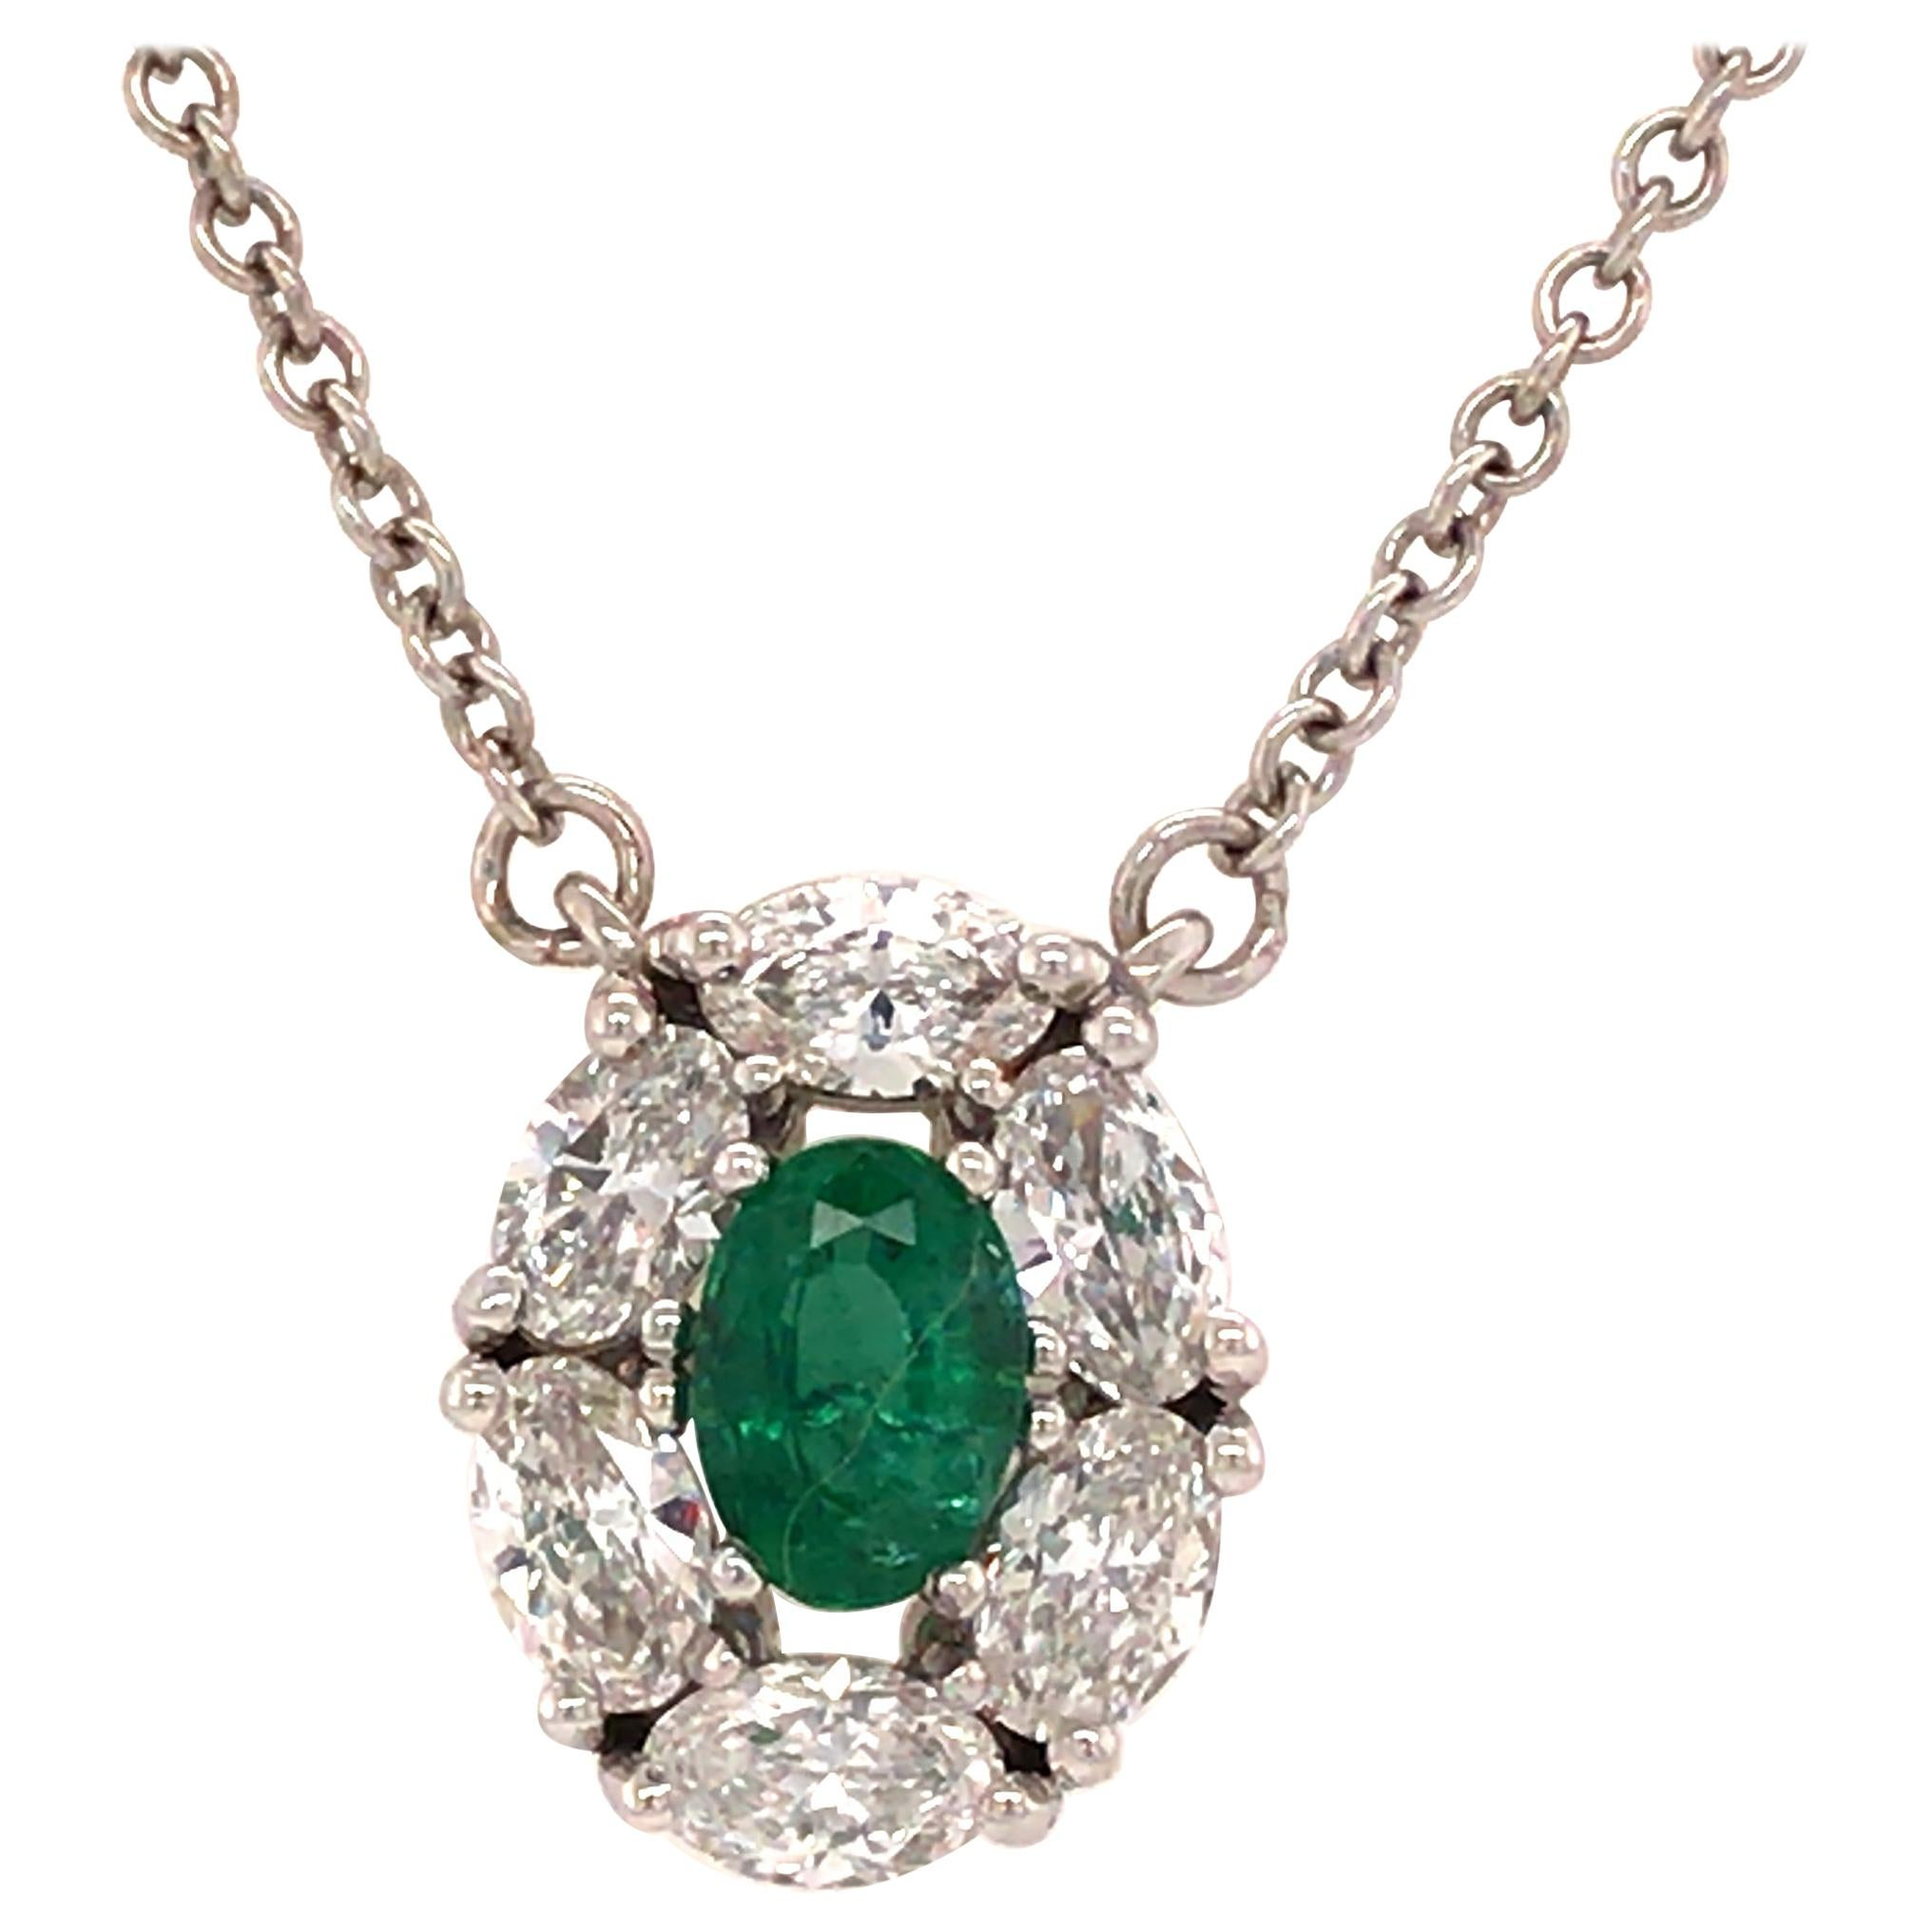 18K Oval Diamond and Emerald Pendant Diamond-by-the-Yard Necklace White Gold